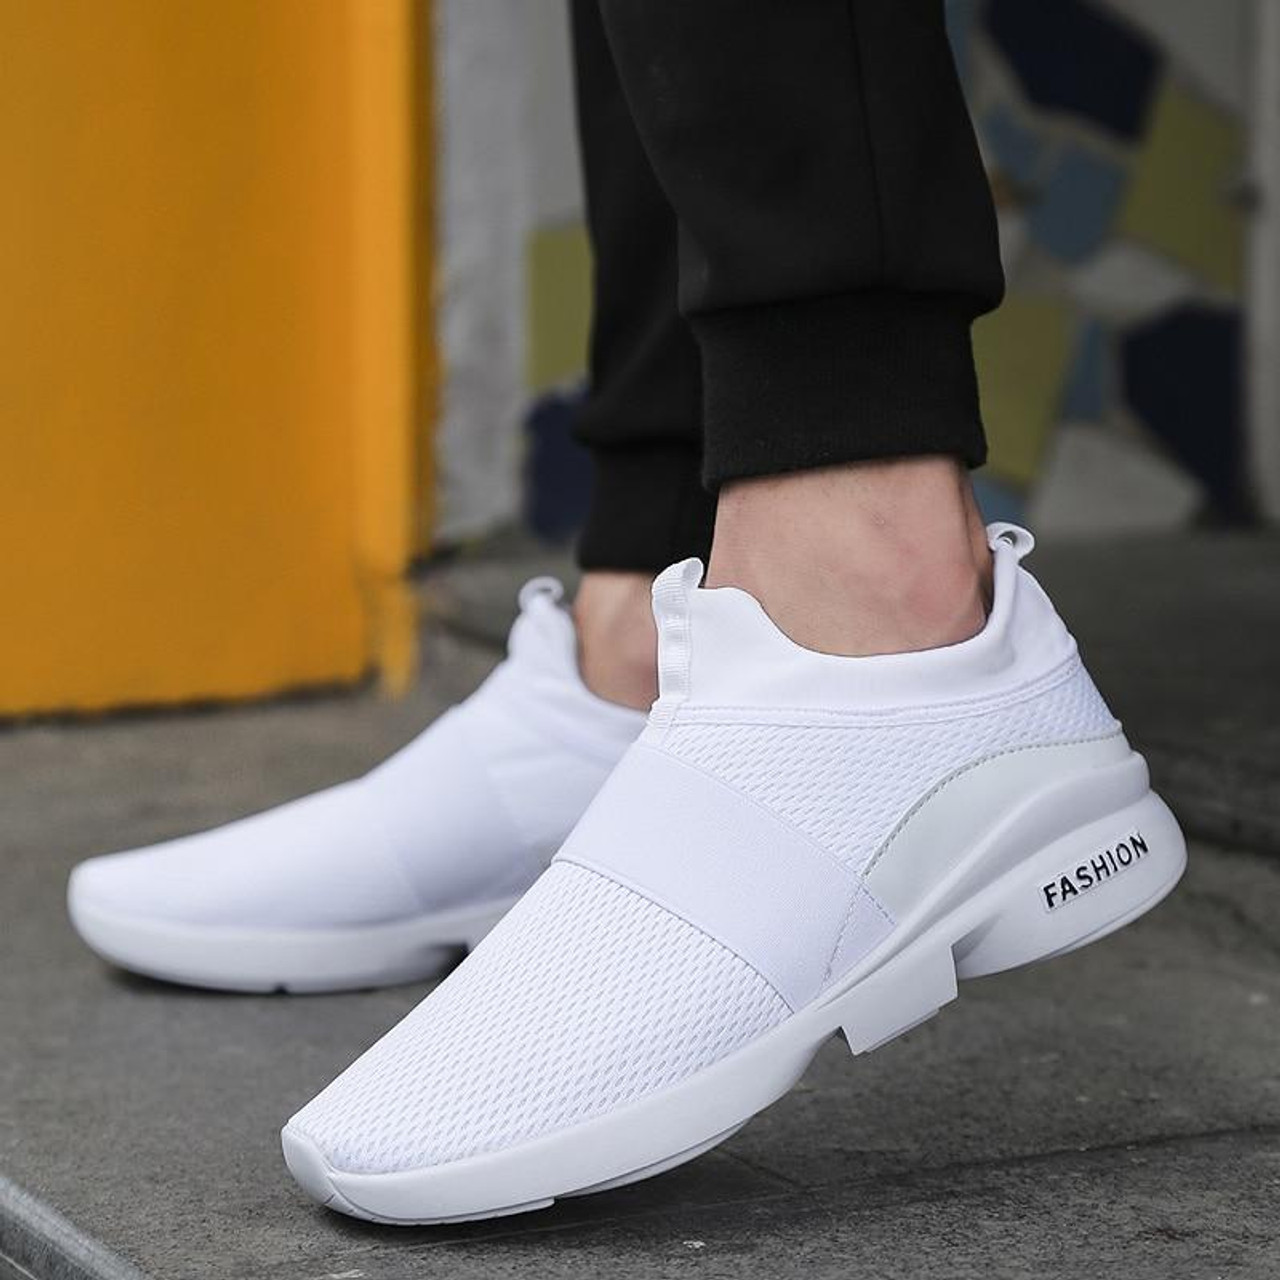 best fashion trainers 2018